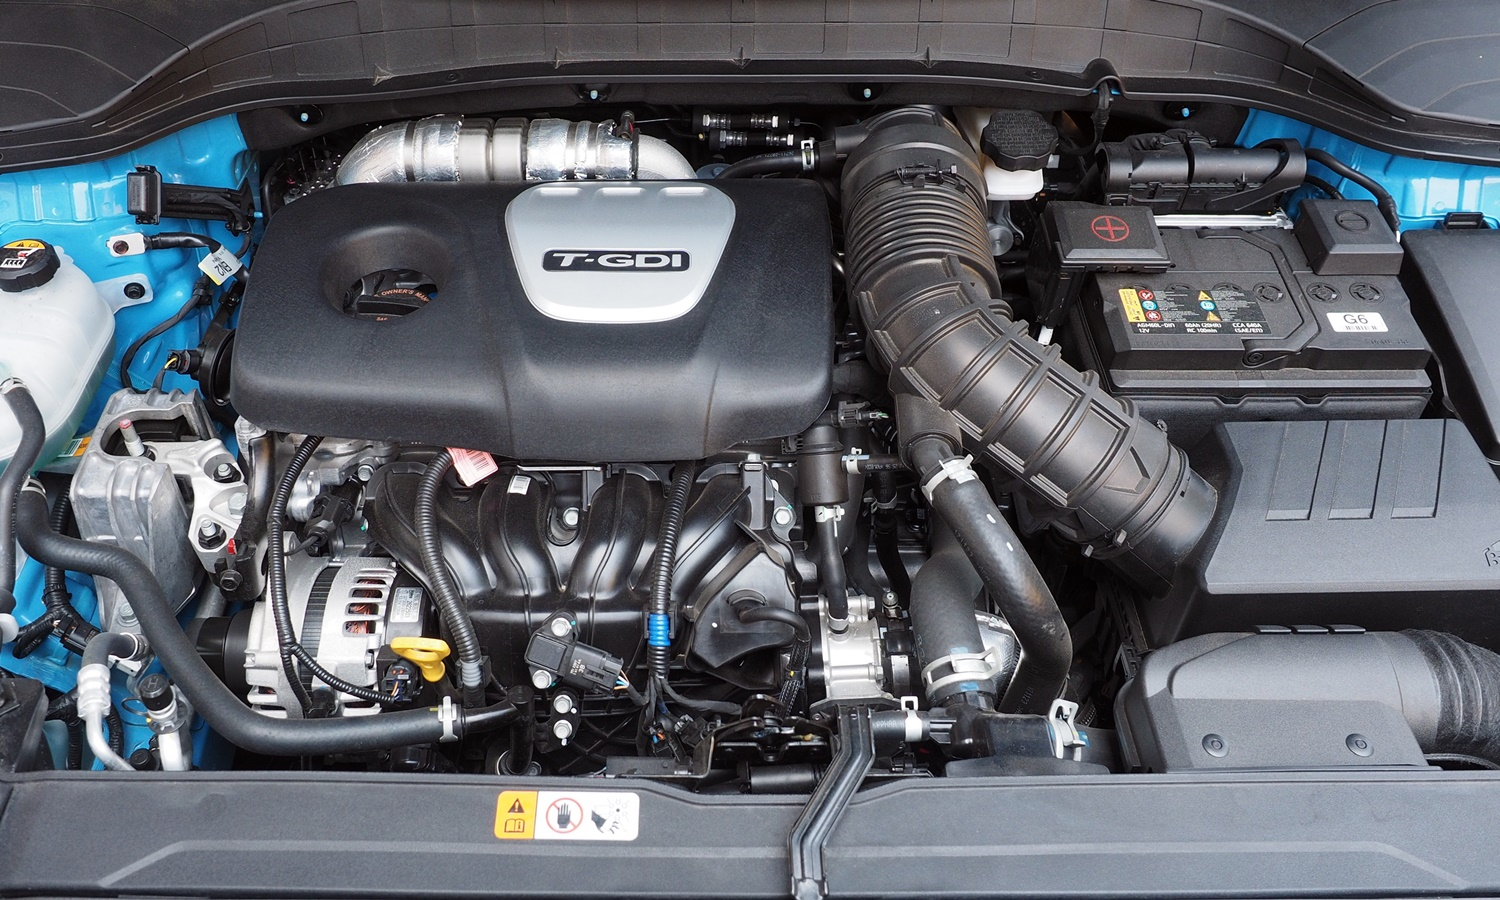 Hyundai Kona Photos: 2018 Hyundai Kona engine